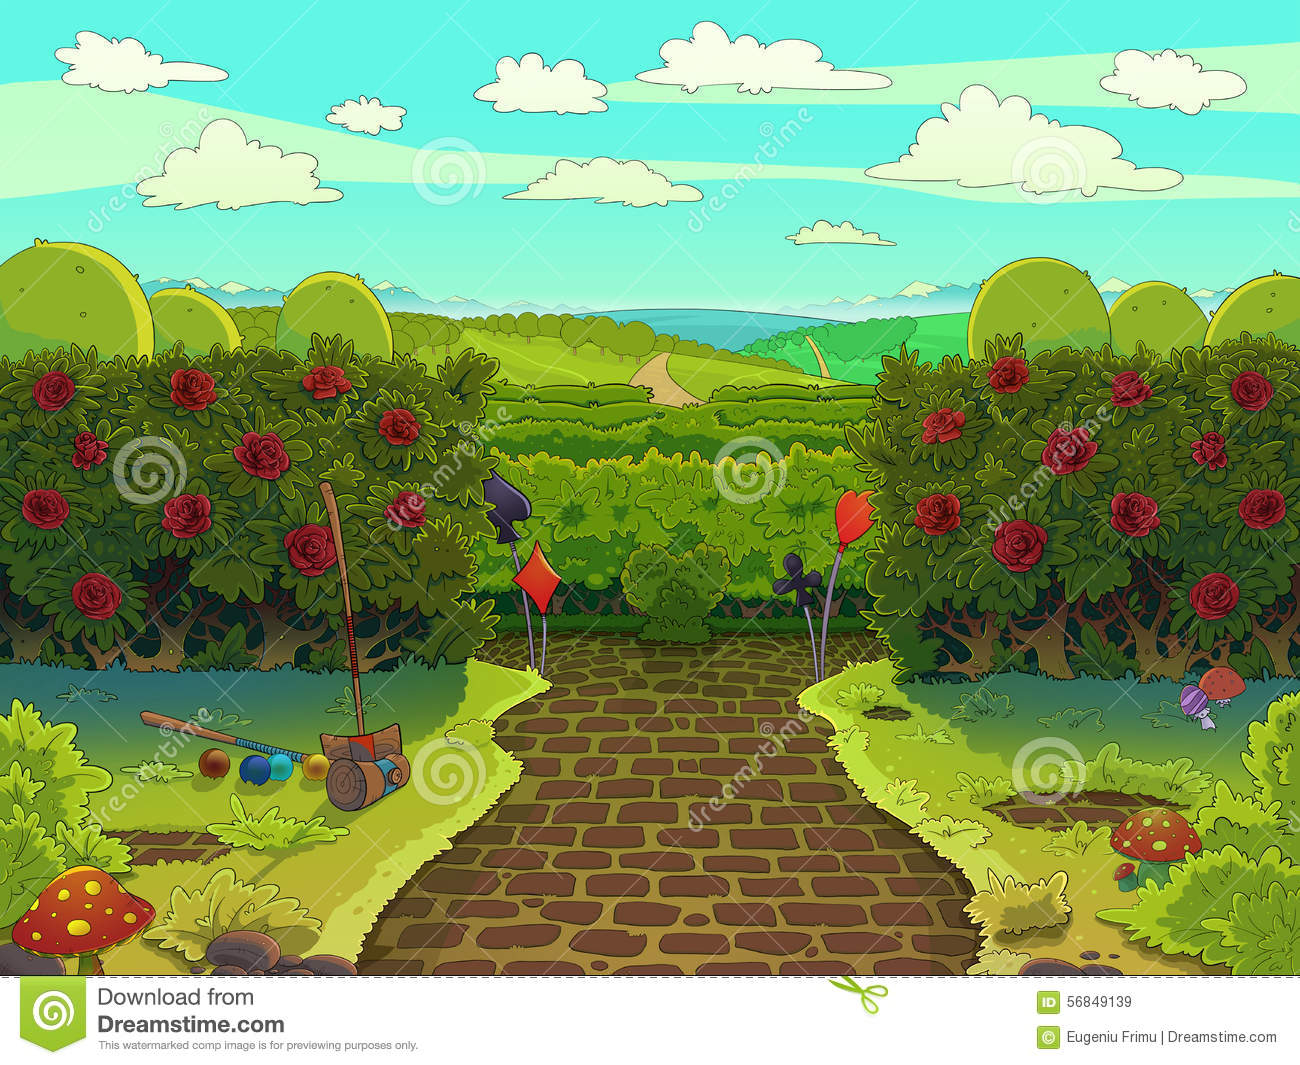 Green Garden With Red Roses  Croquet Court  Stock